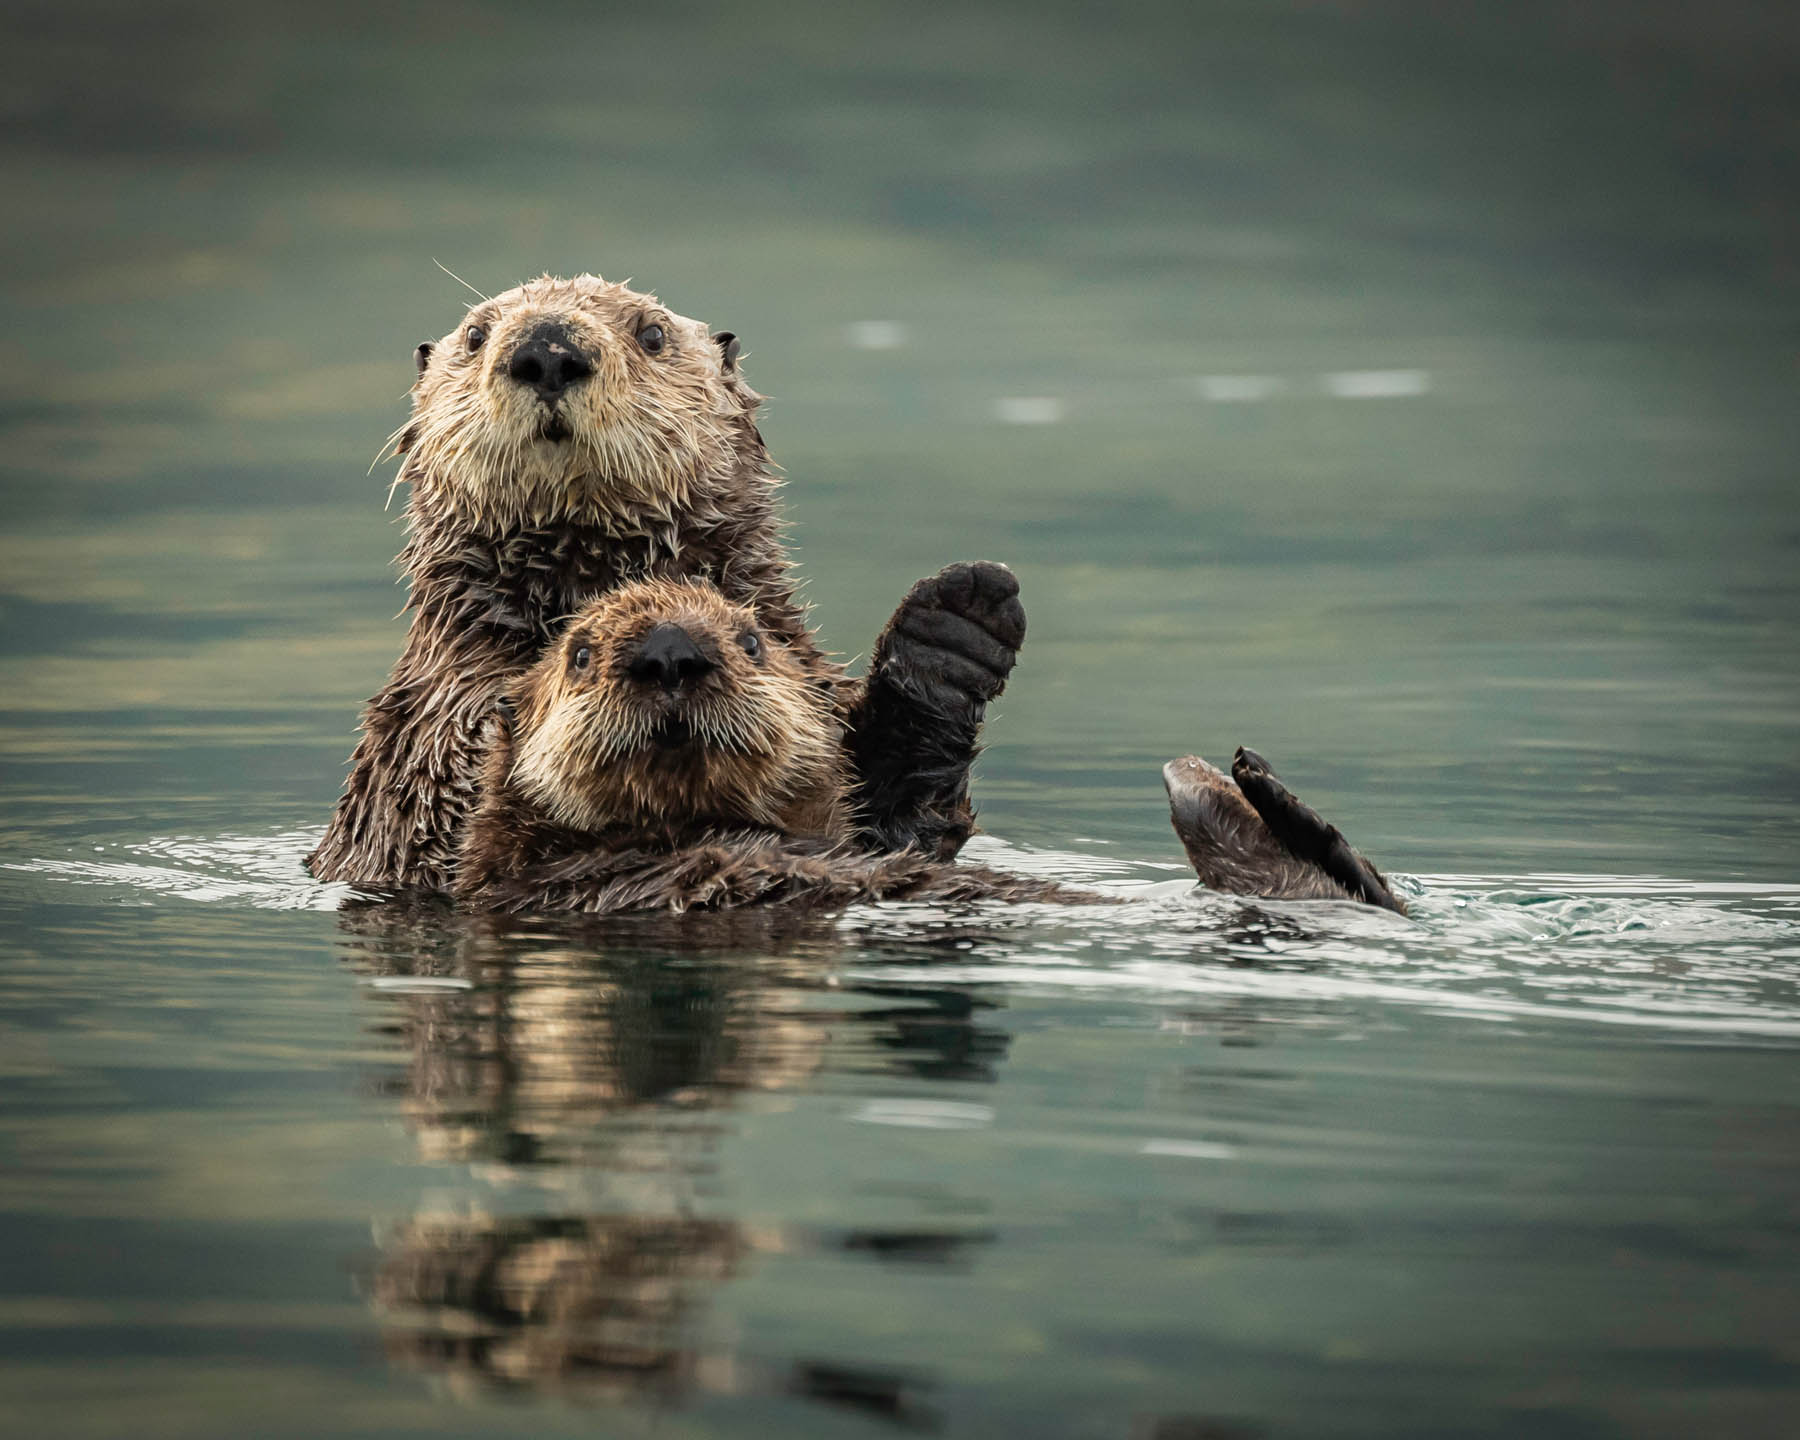 Two otters swimming.